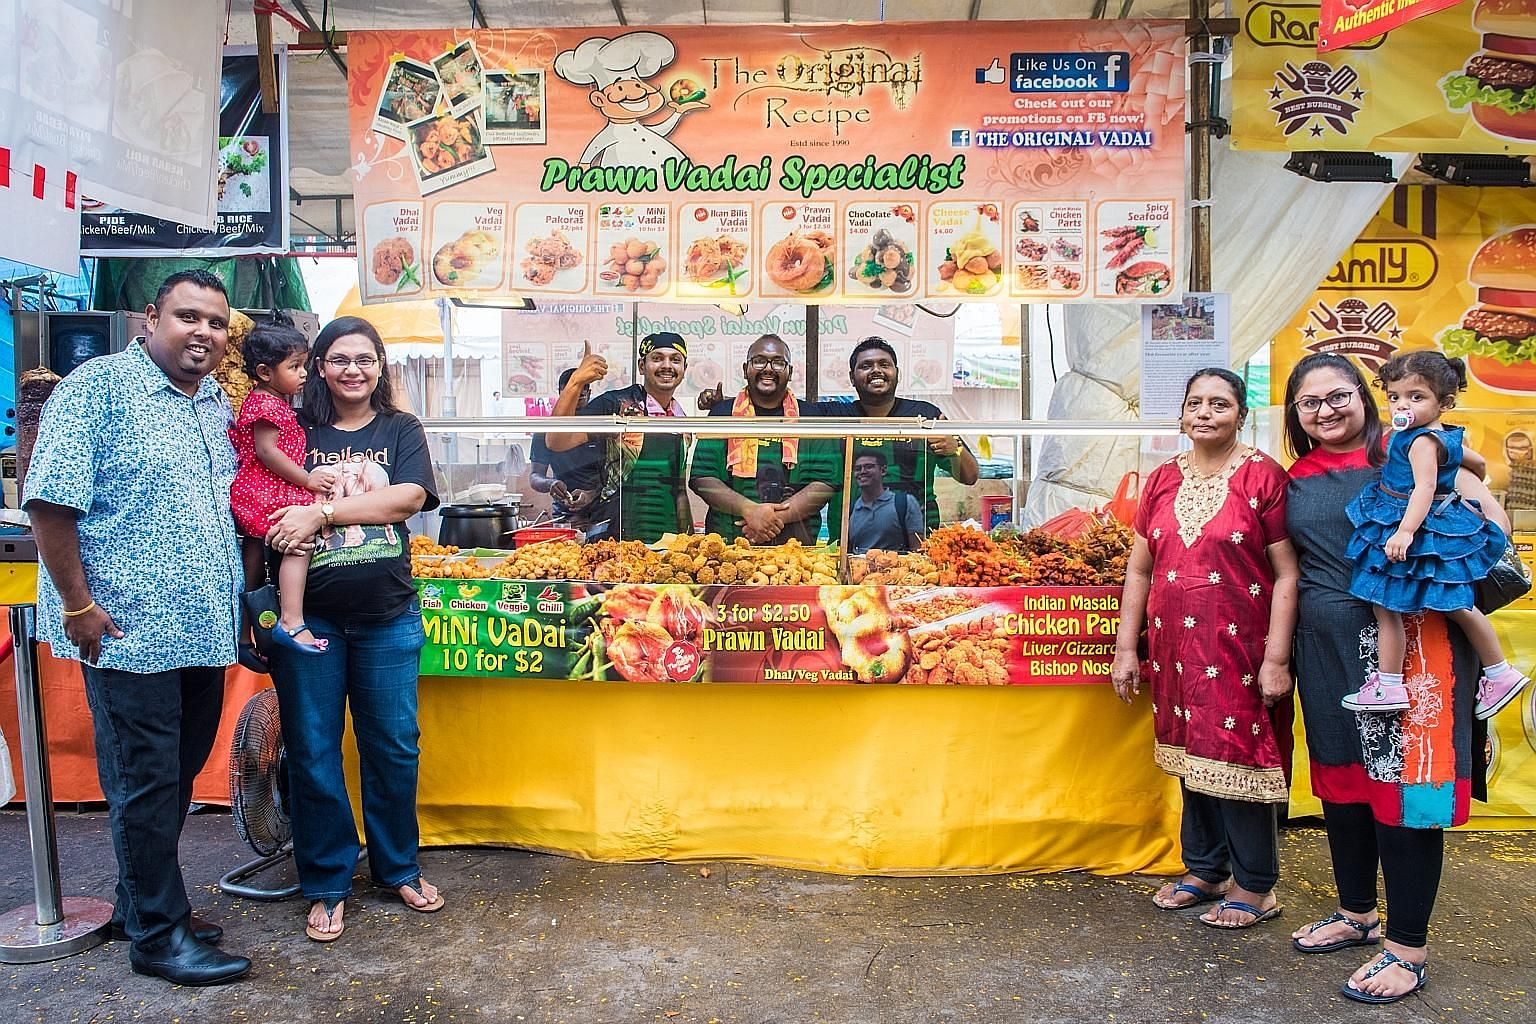 Mr Suriyah Selvarajah's family at their Original Recipe vadai stall, which offers cheese and chocolate variations.